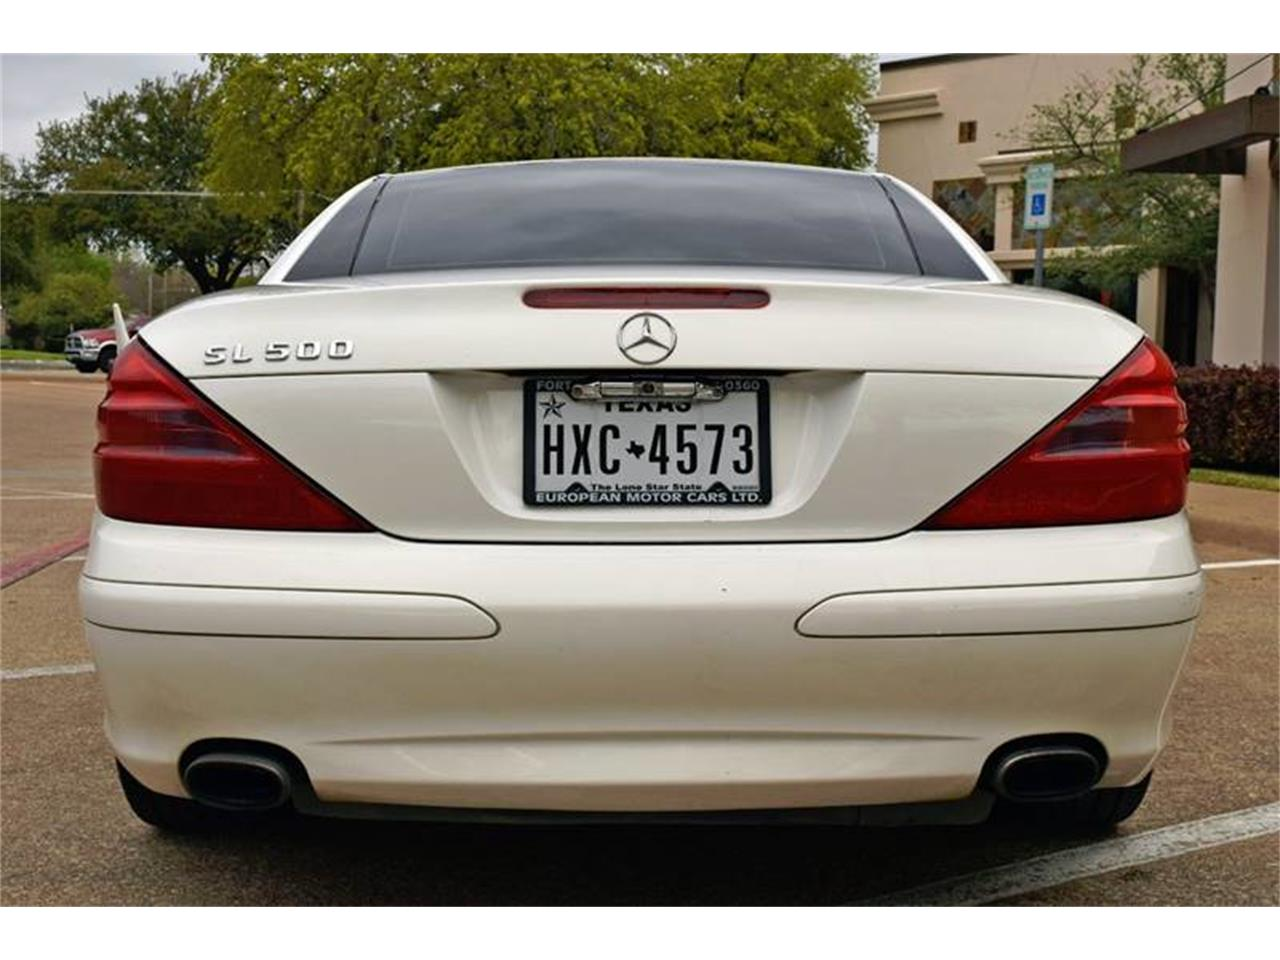 Large Picture of '03 Mercedes-Benz SL-Class located in Texas Offered by European Motor Cars LTD - PSCW